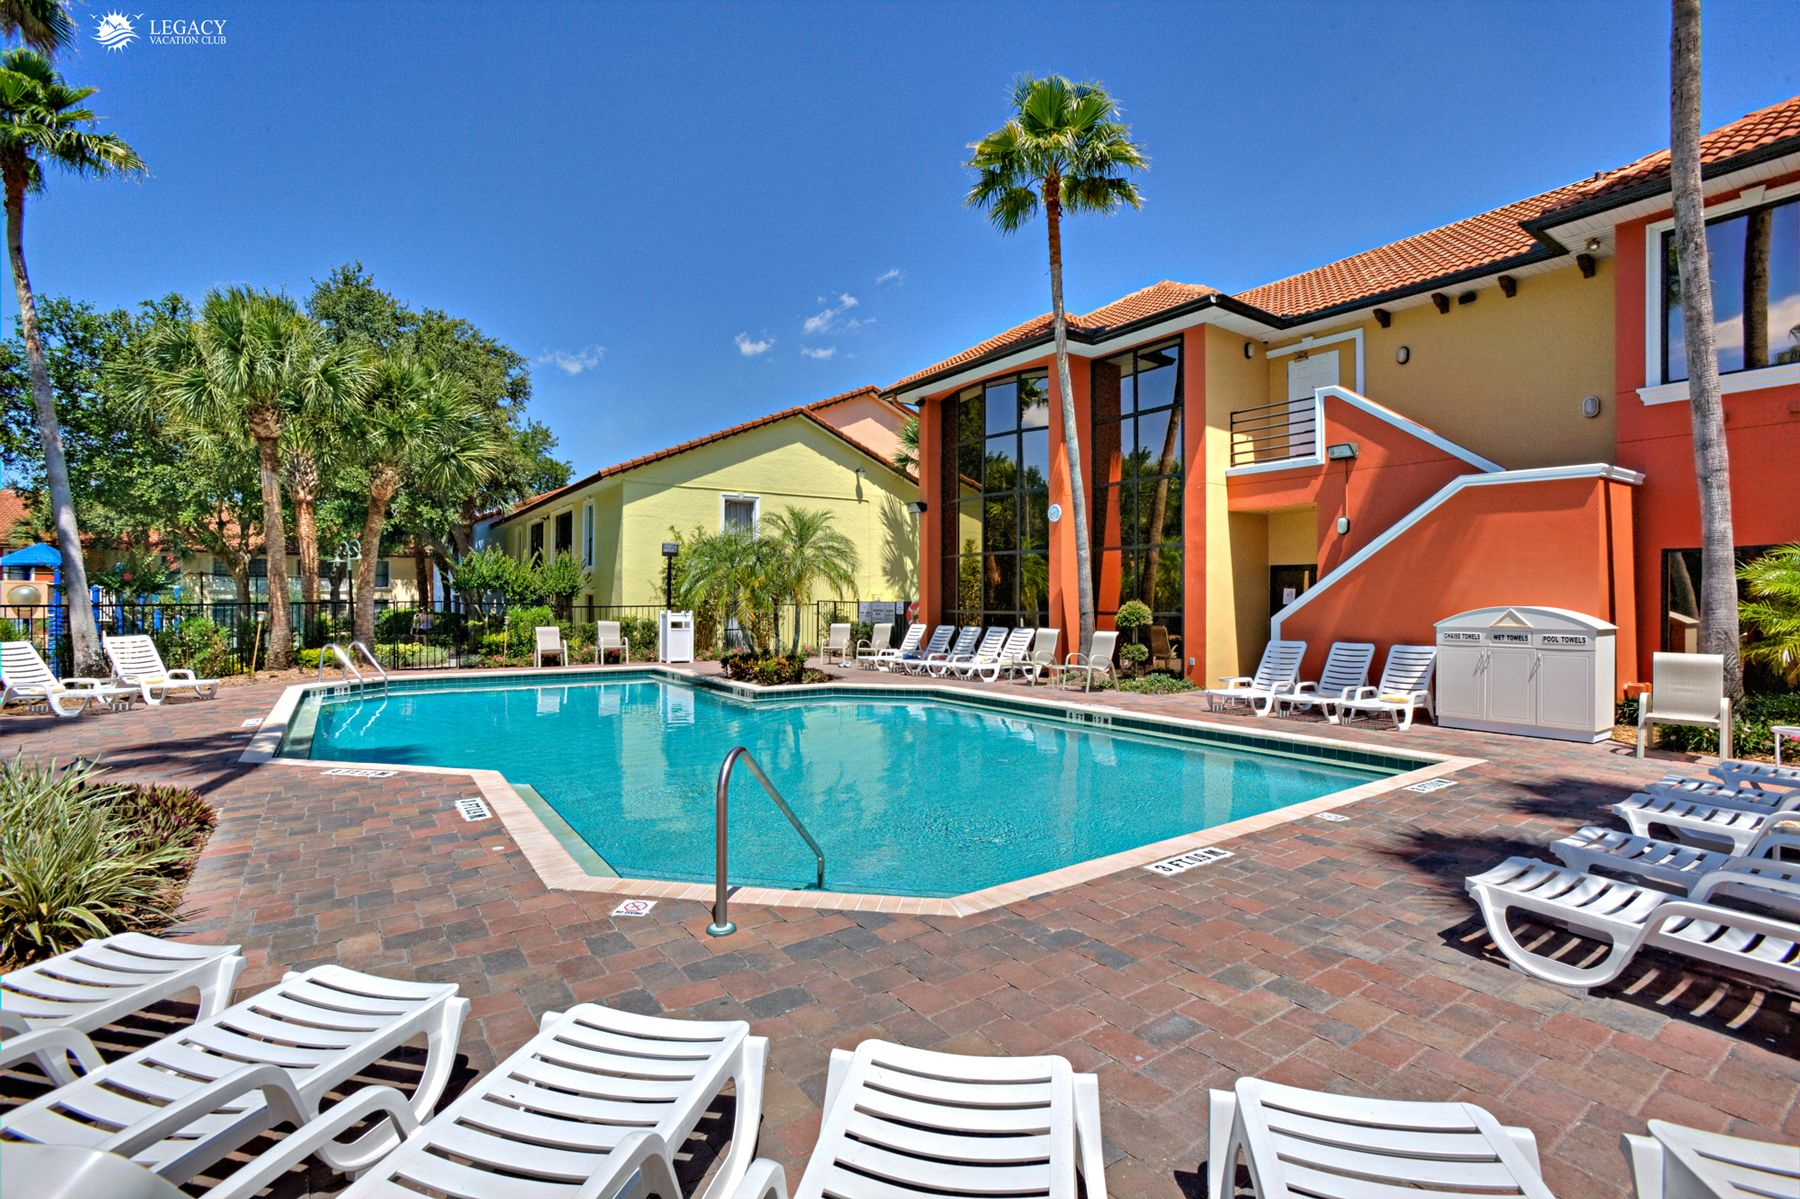 Your Friday spot at Legacy Vacation Resorts Lake Buena